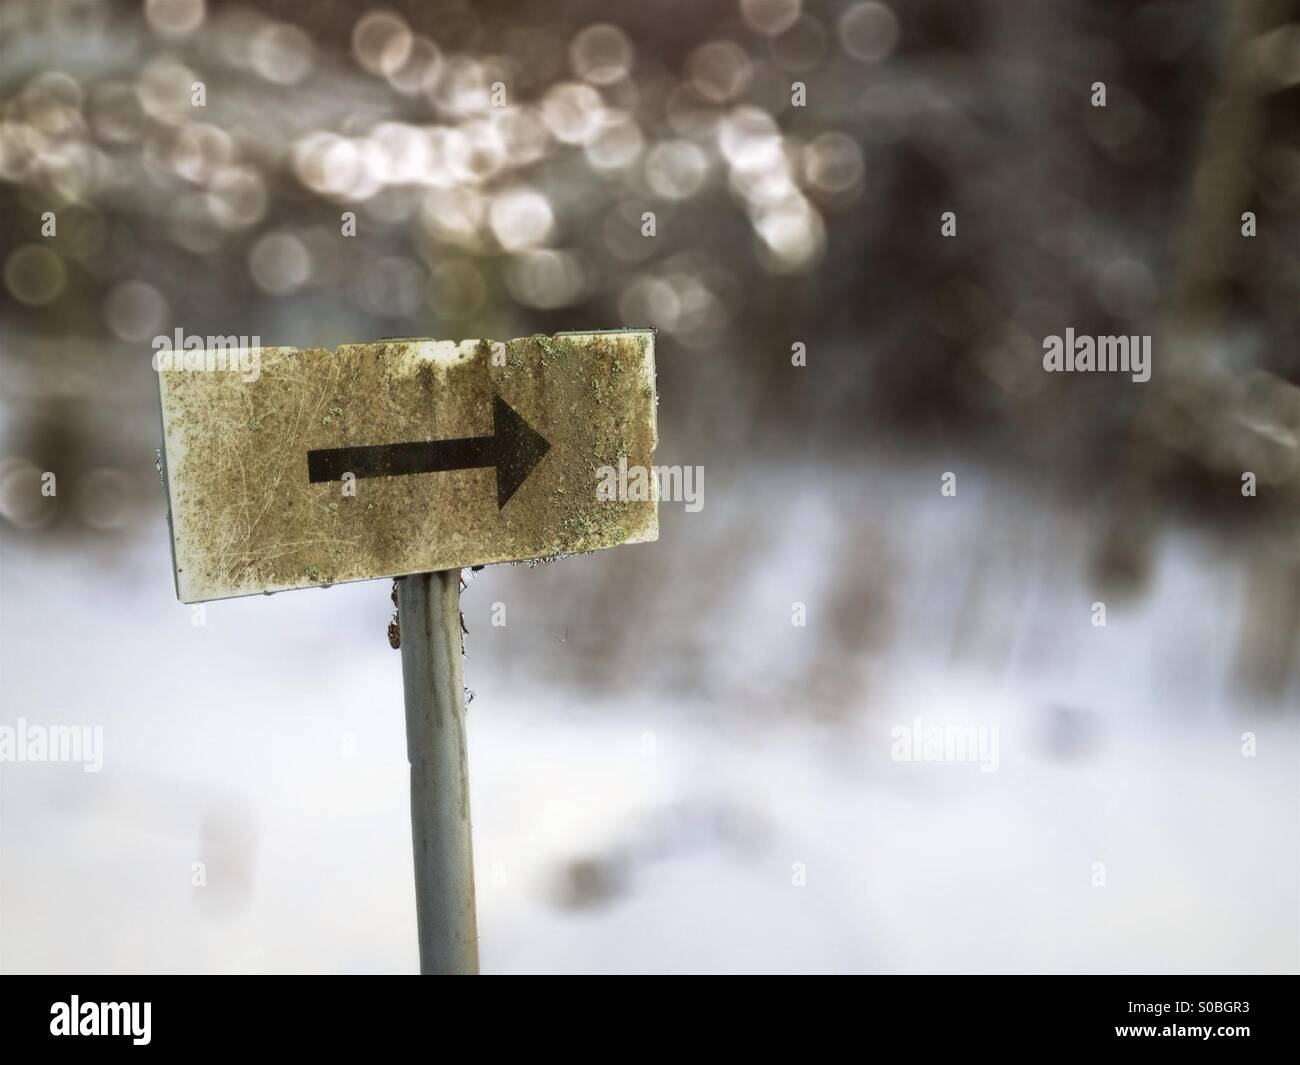 Arrow sign with bokeh and snow in background - Stock Image